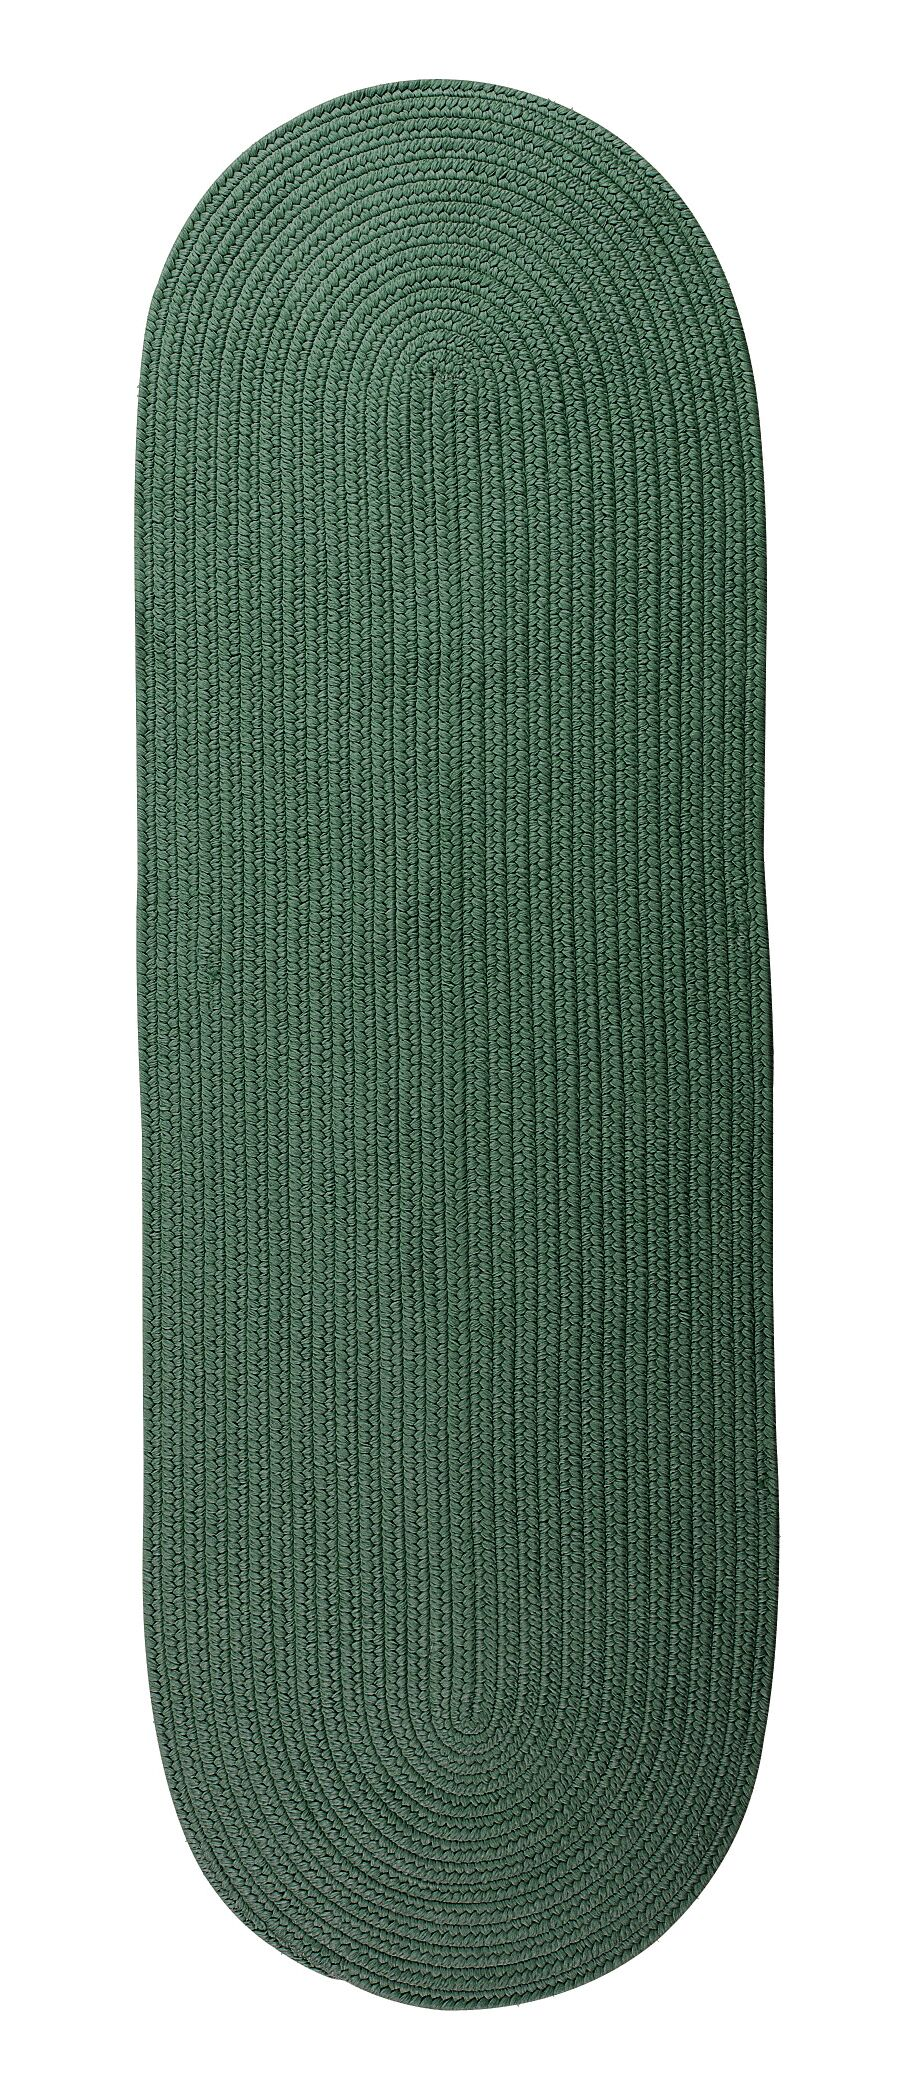 Wentworth Mansion Reversible Hand-Braided Green Indoor/Outdoor Area Rug Rug Size: Runner 2'4